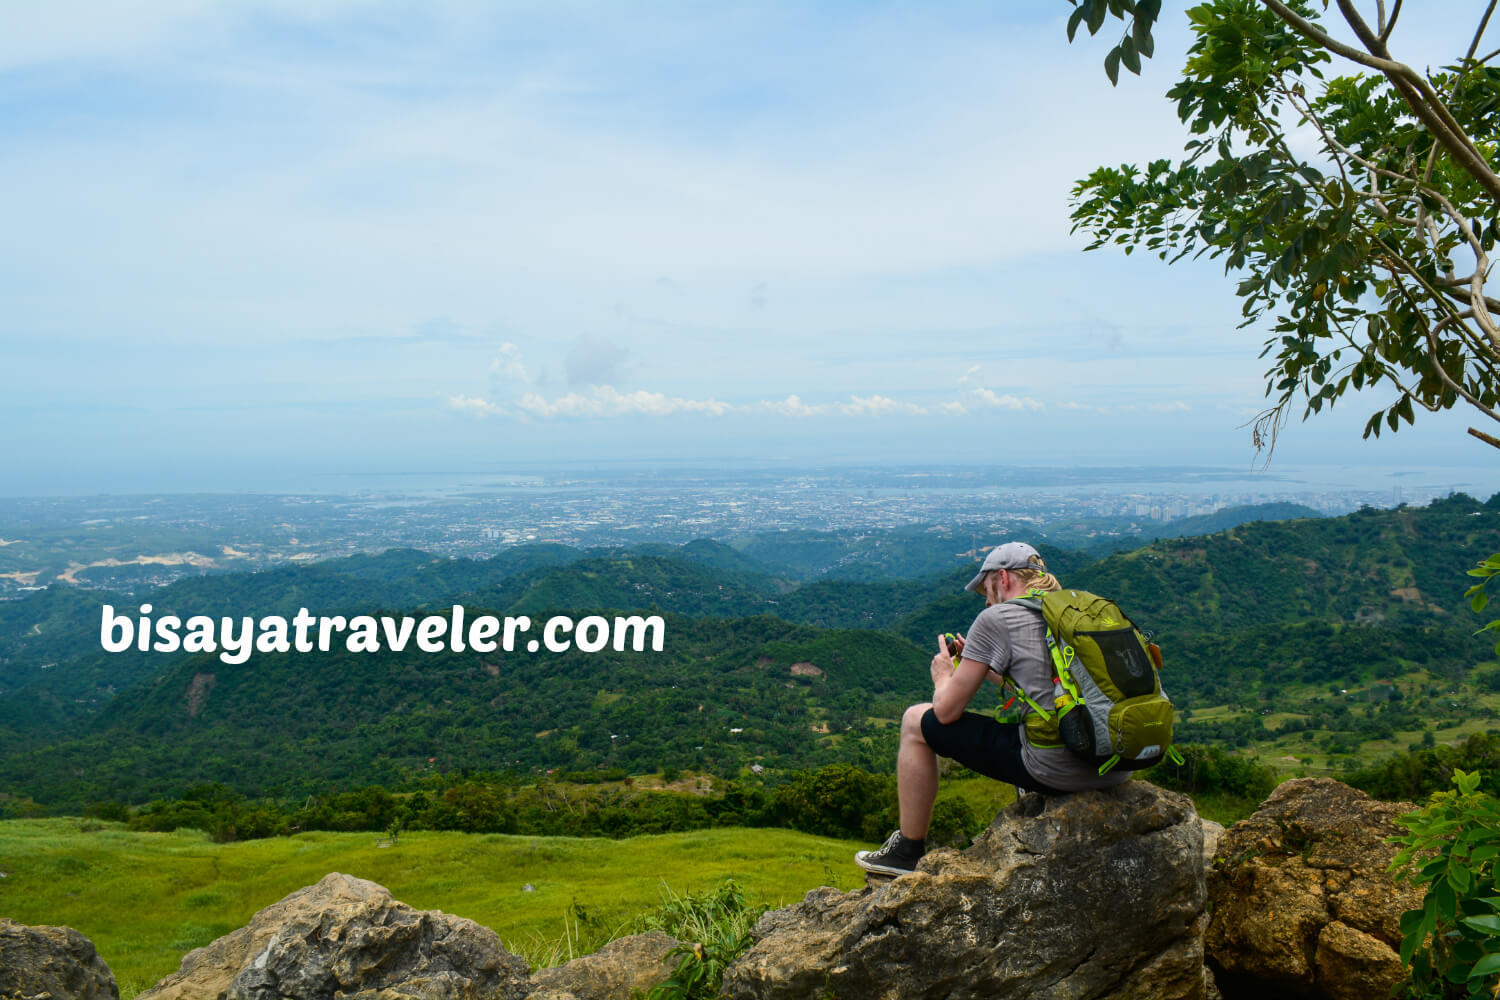 Mount Kan-irag: One Of The Most Scenic Lookouts In Cebu